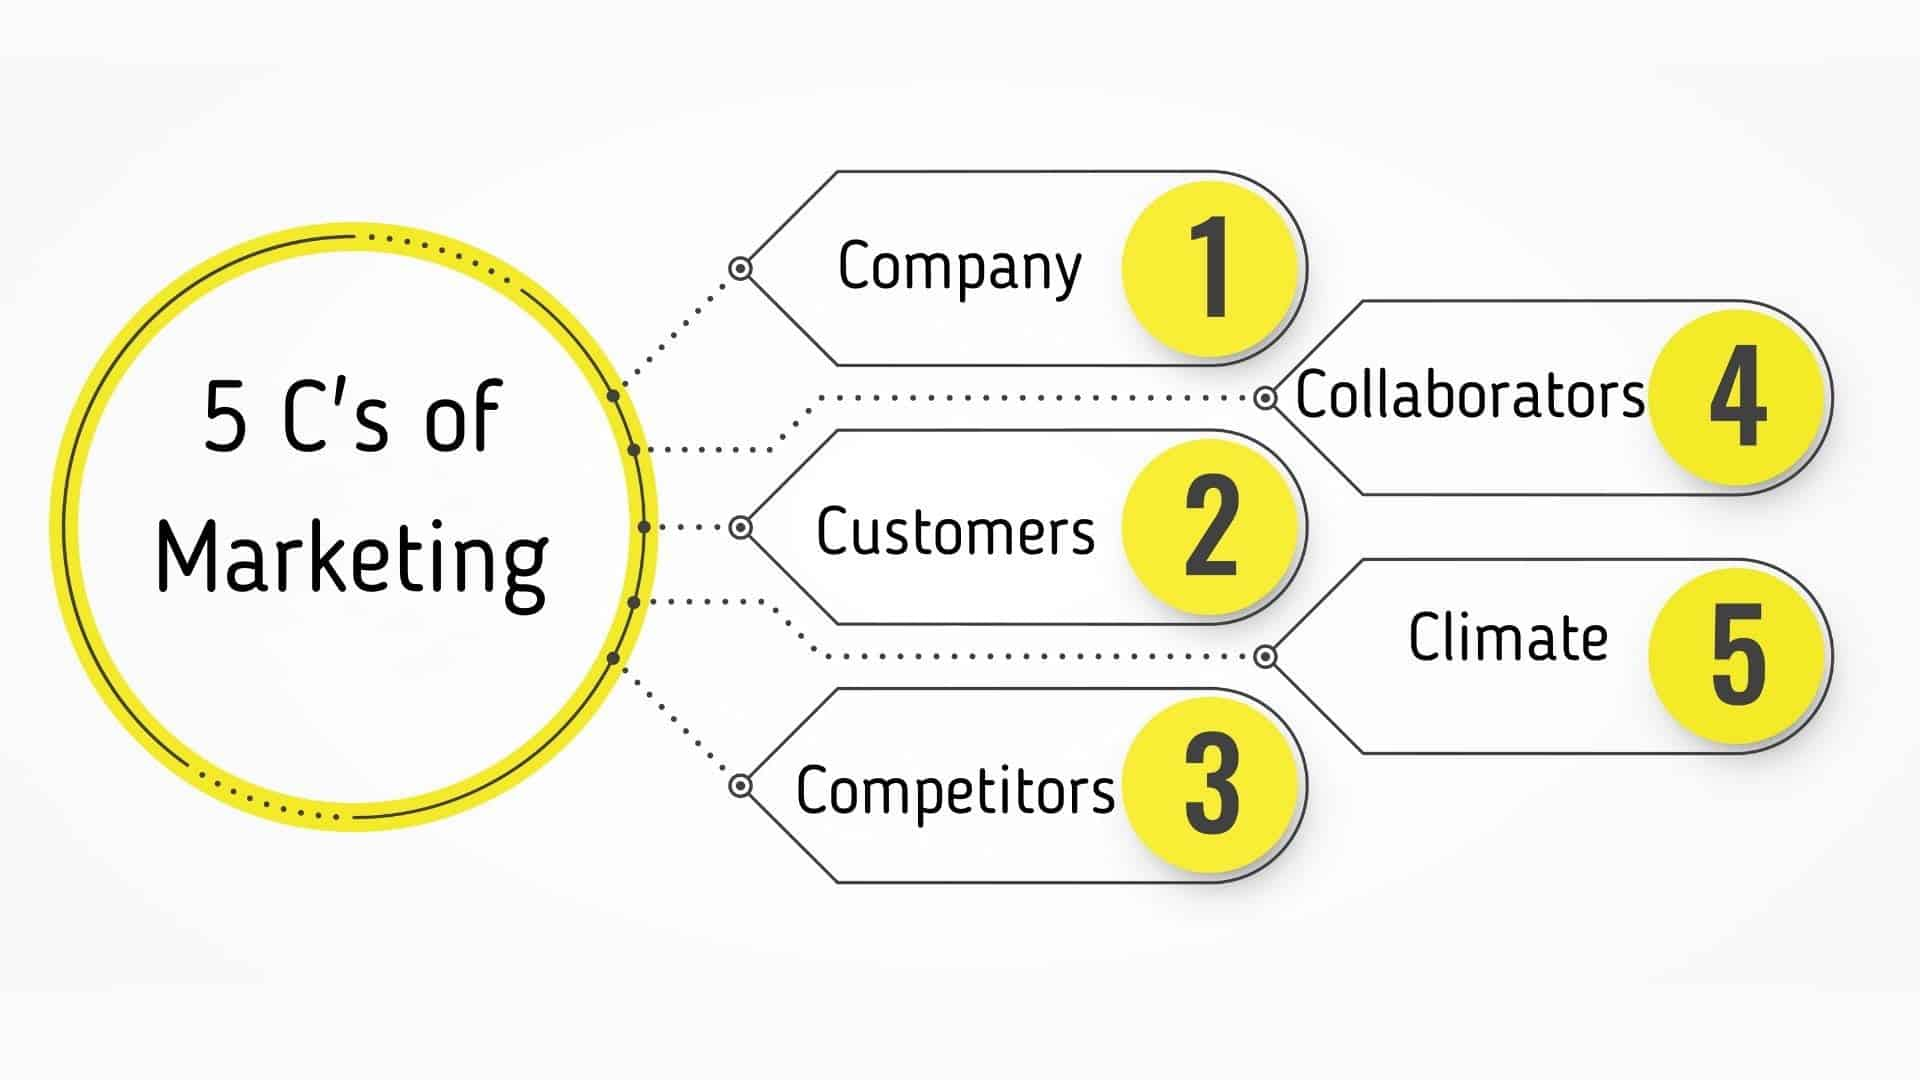 ( Best ) 5 Cs of Marketing | How to conduct a 5c analysis | What are the five C's of marketing? Definition and examples